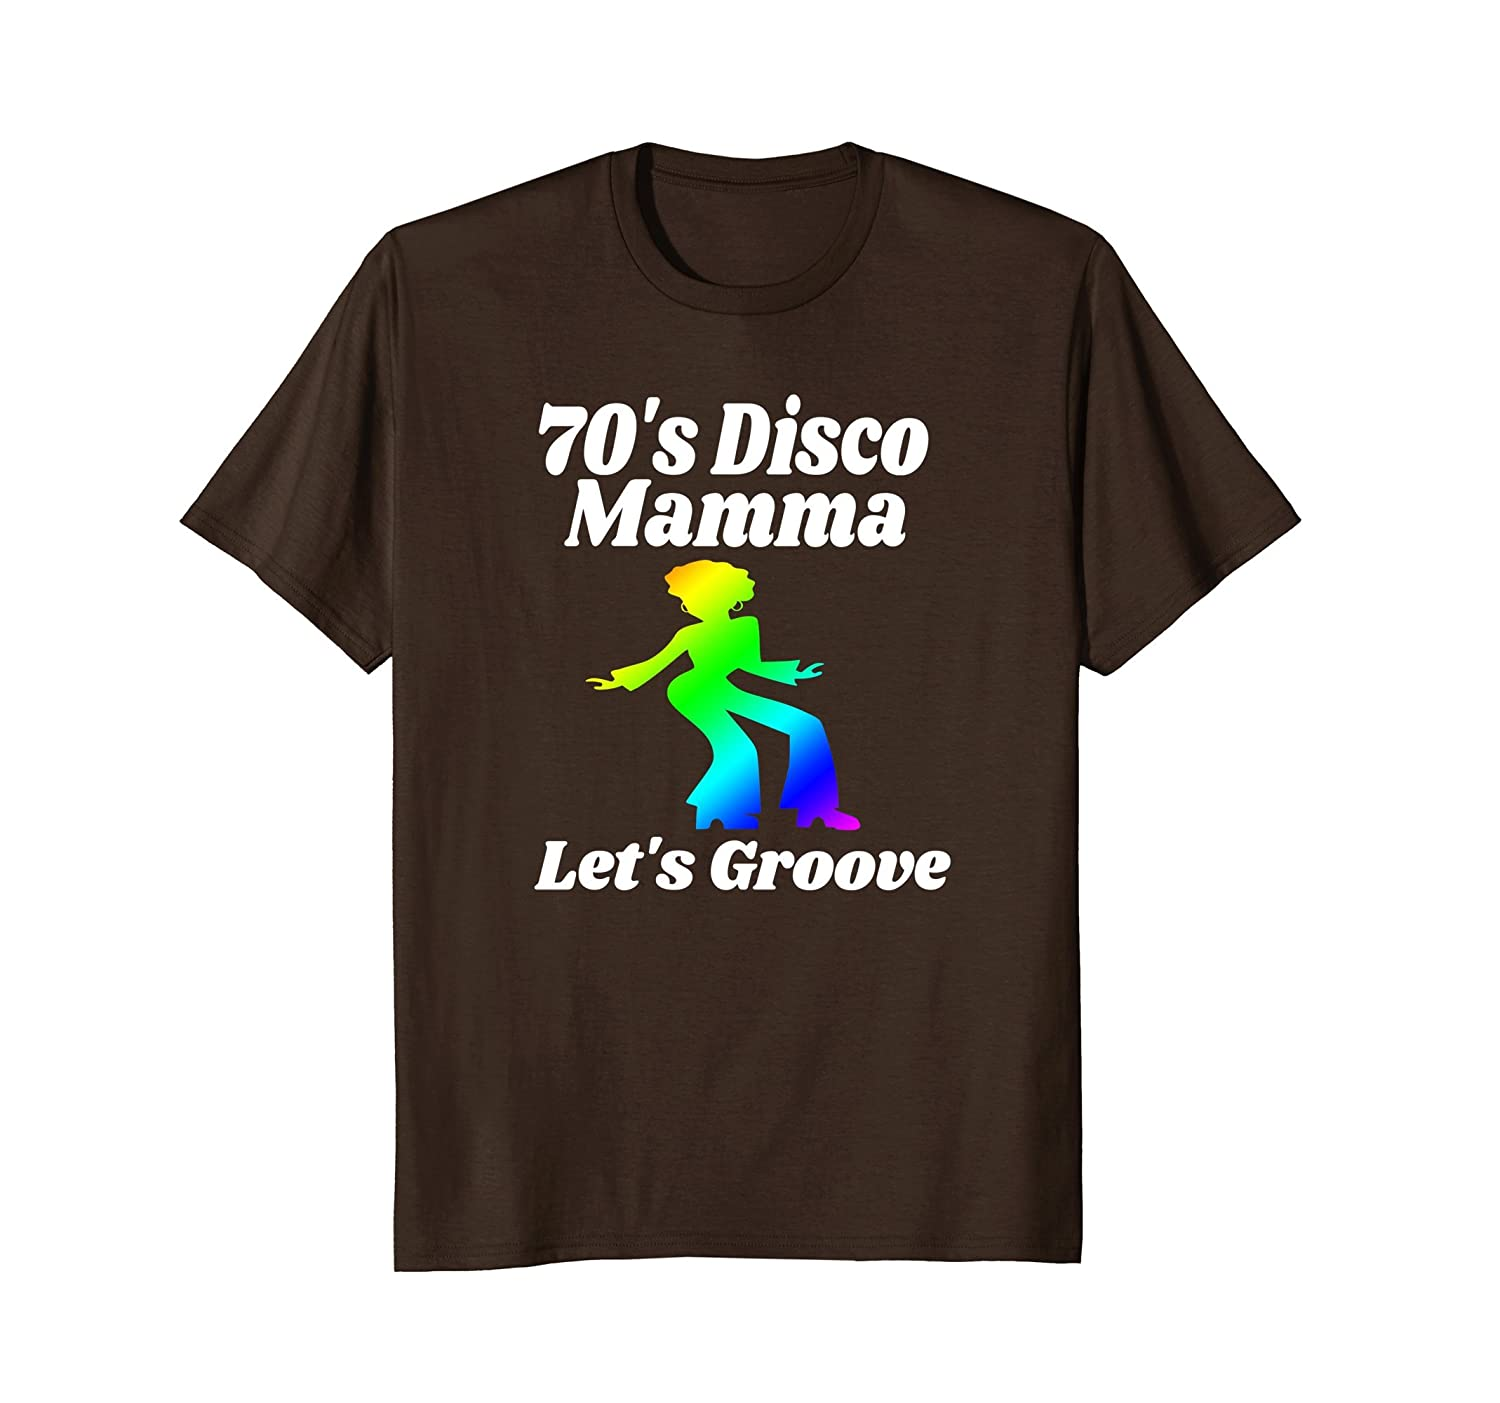 70's Disco Mamma Let's Groove Disco Party Shirt 70's Party-alottee gift